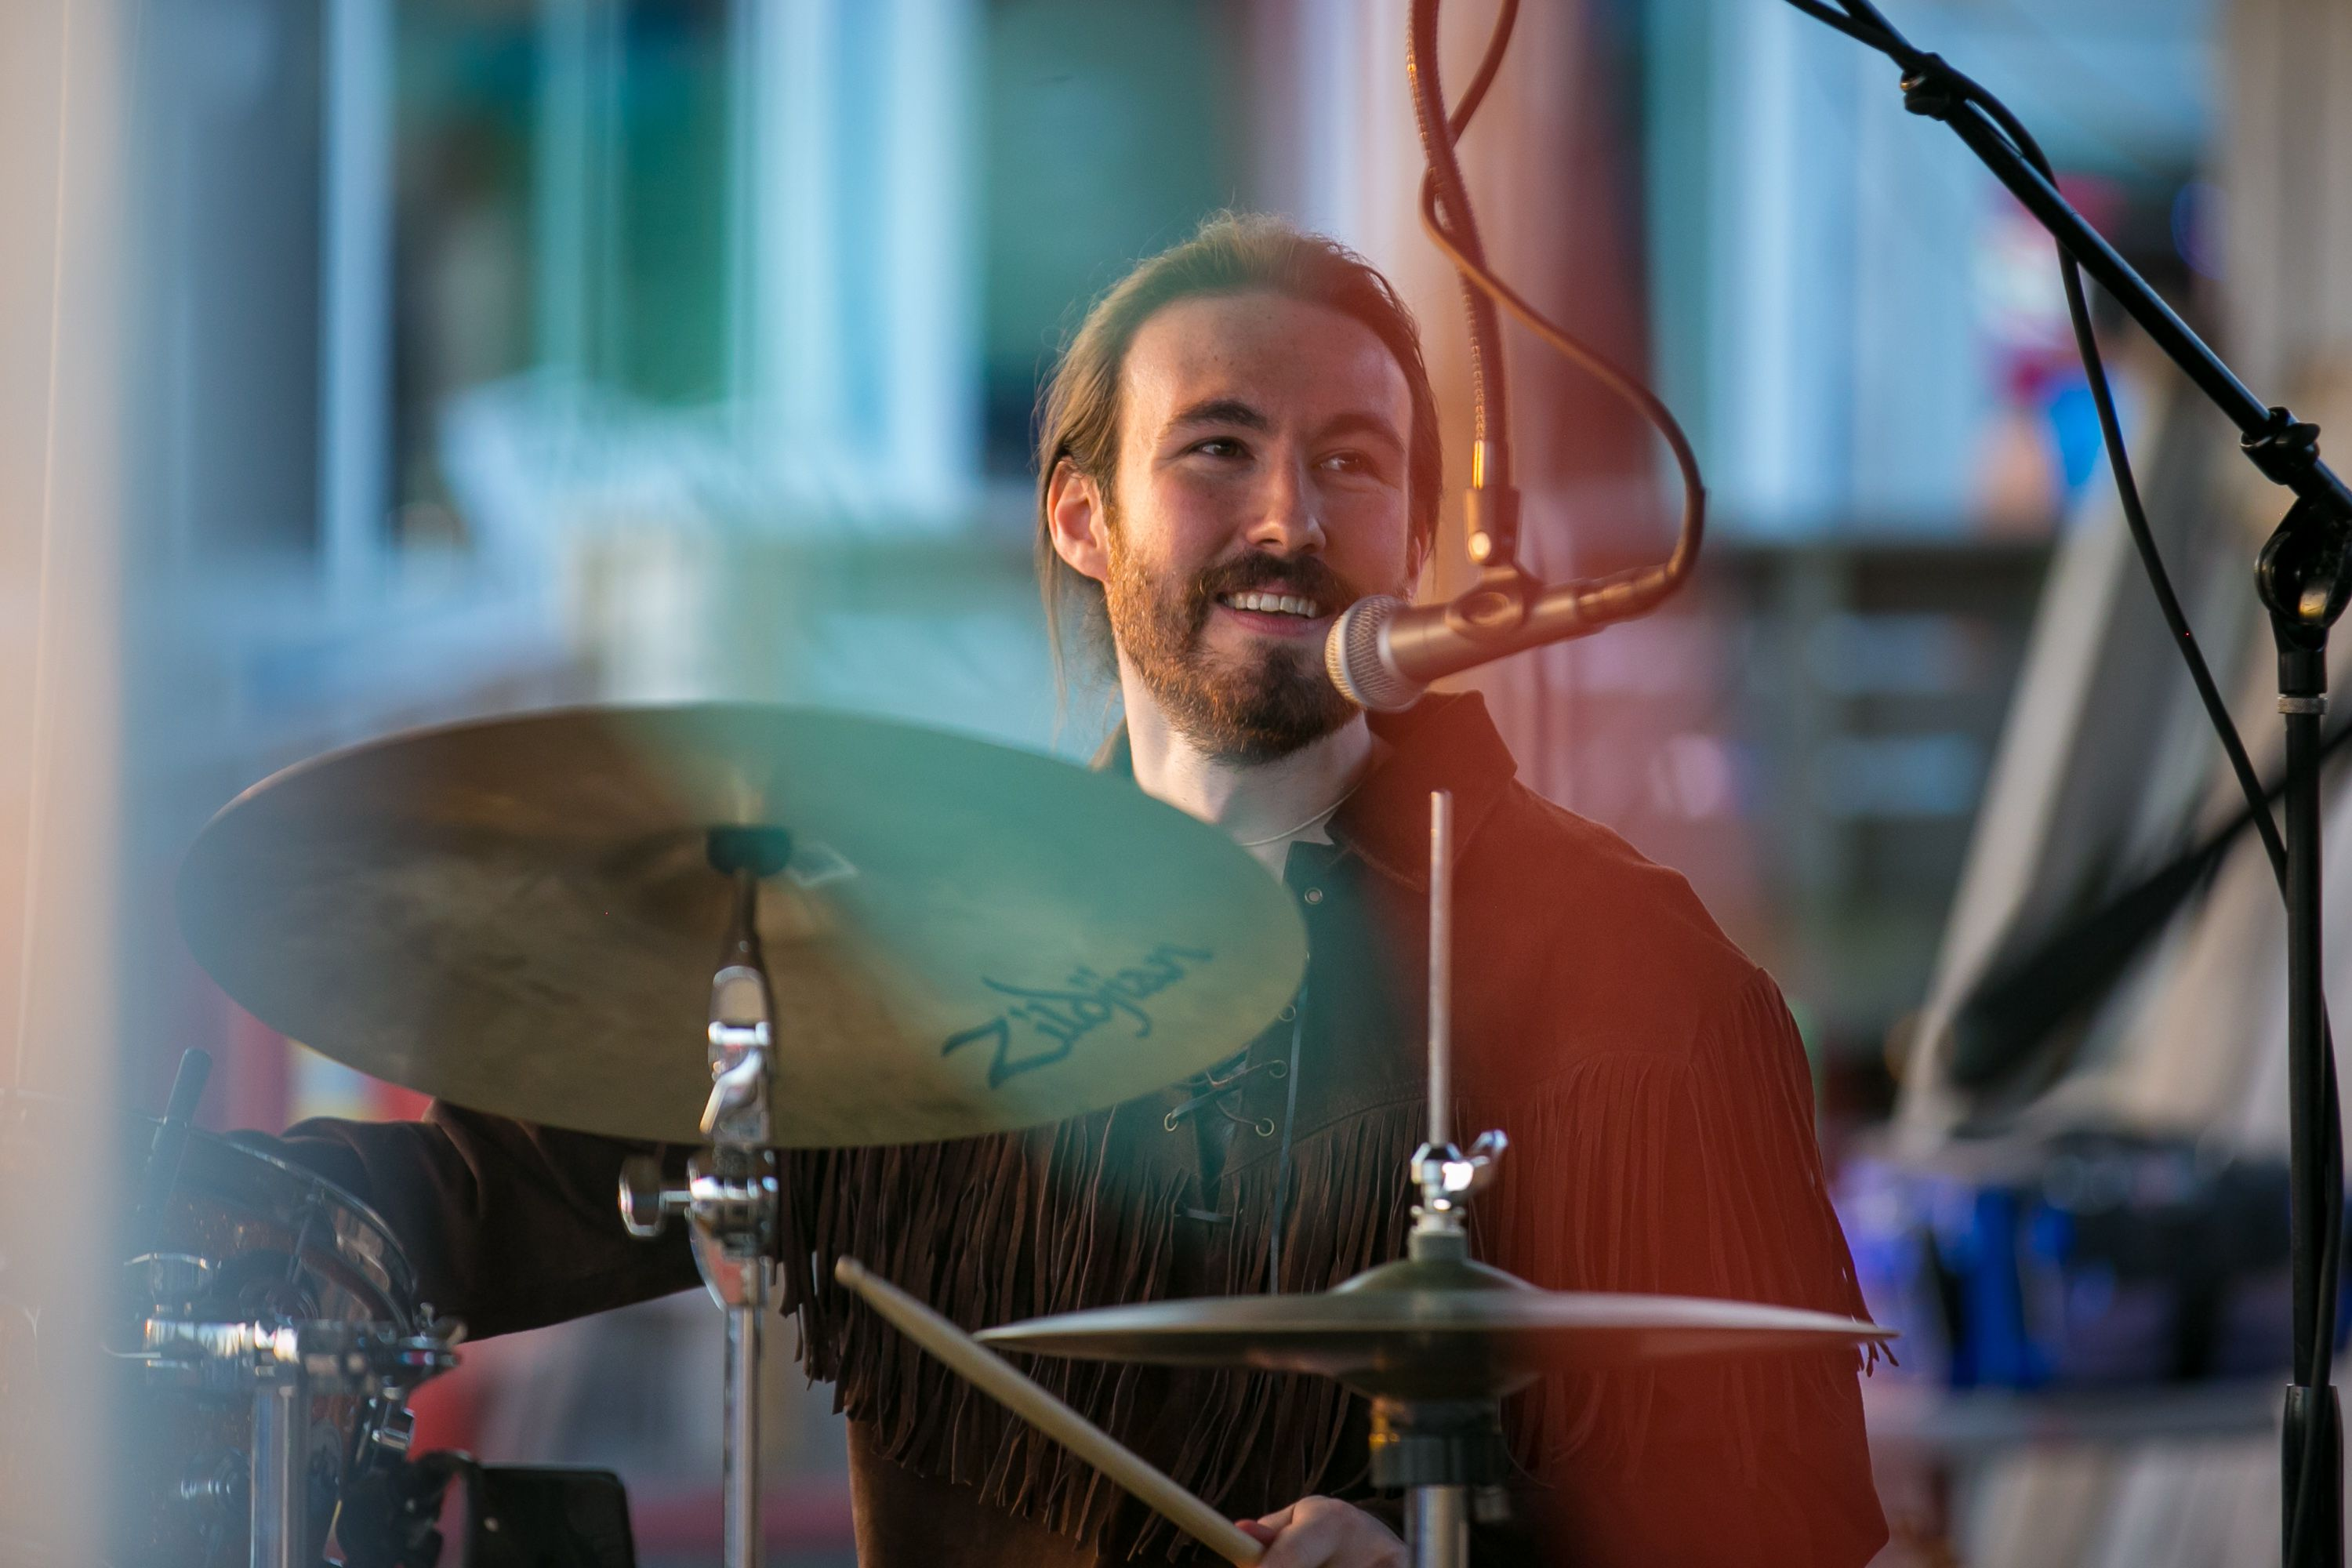 Zack Weinstein, drummer of Earthmother, performs at Mackey's Hideout on Saturday, April 3, 2021, in McHenry.